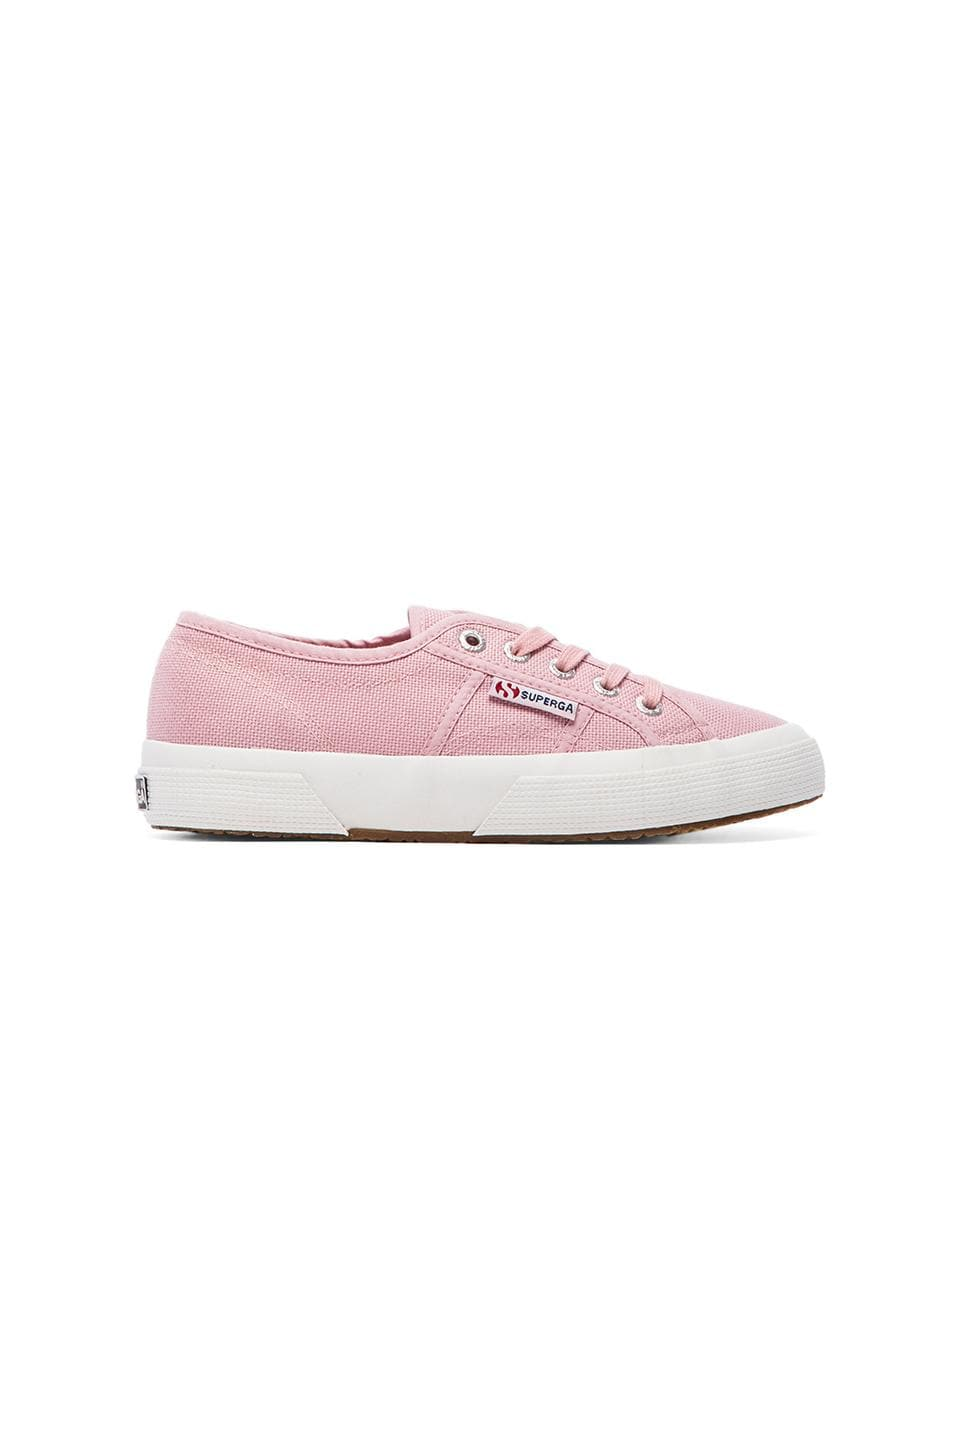 Superga Cotu Classic Sneakers in Pink